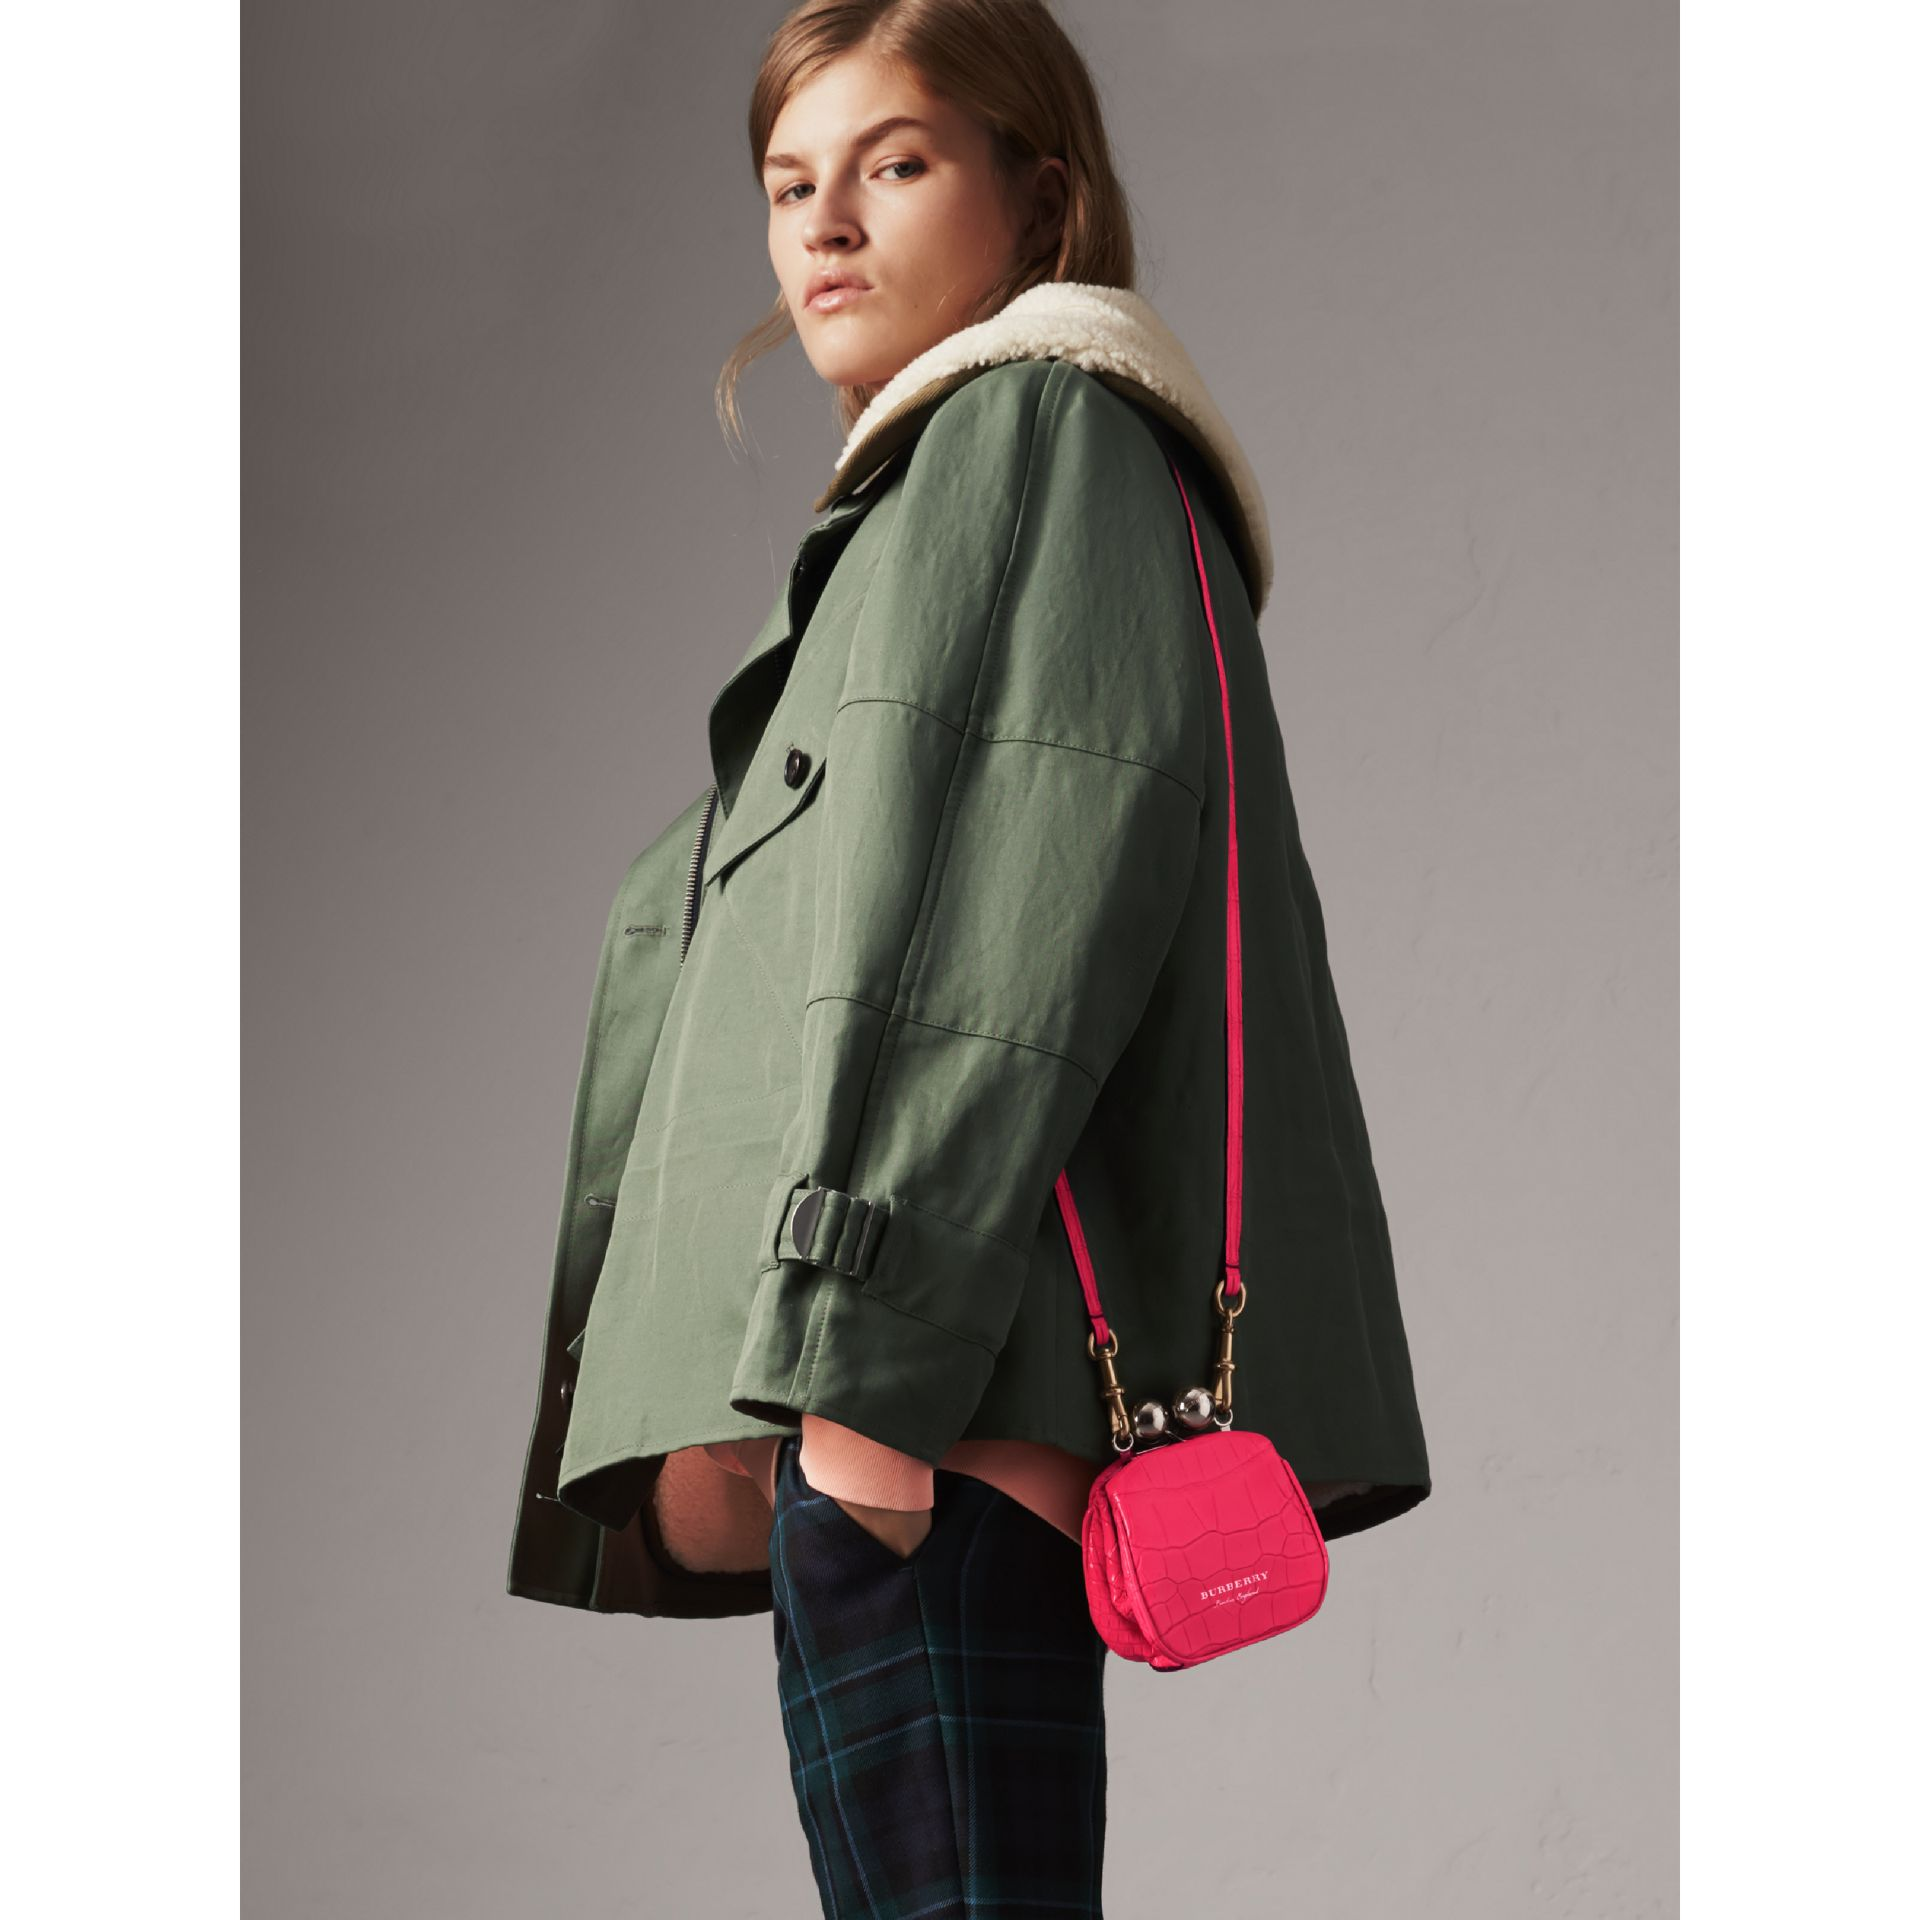 Mini Alligator Frame Bag in Neon Pink - Women | Burberry Canada - gallery image 2